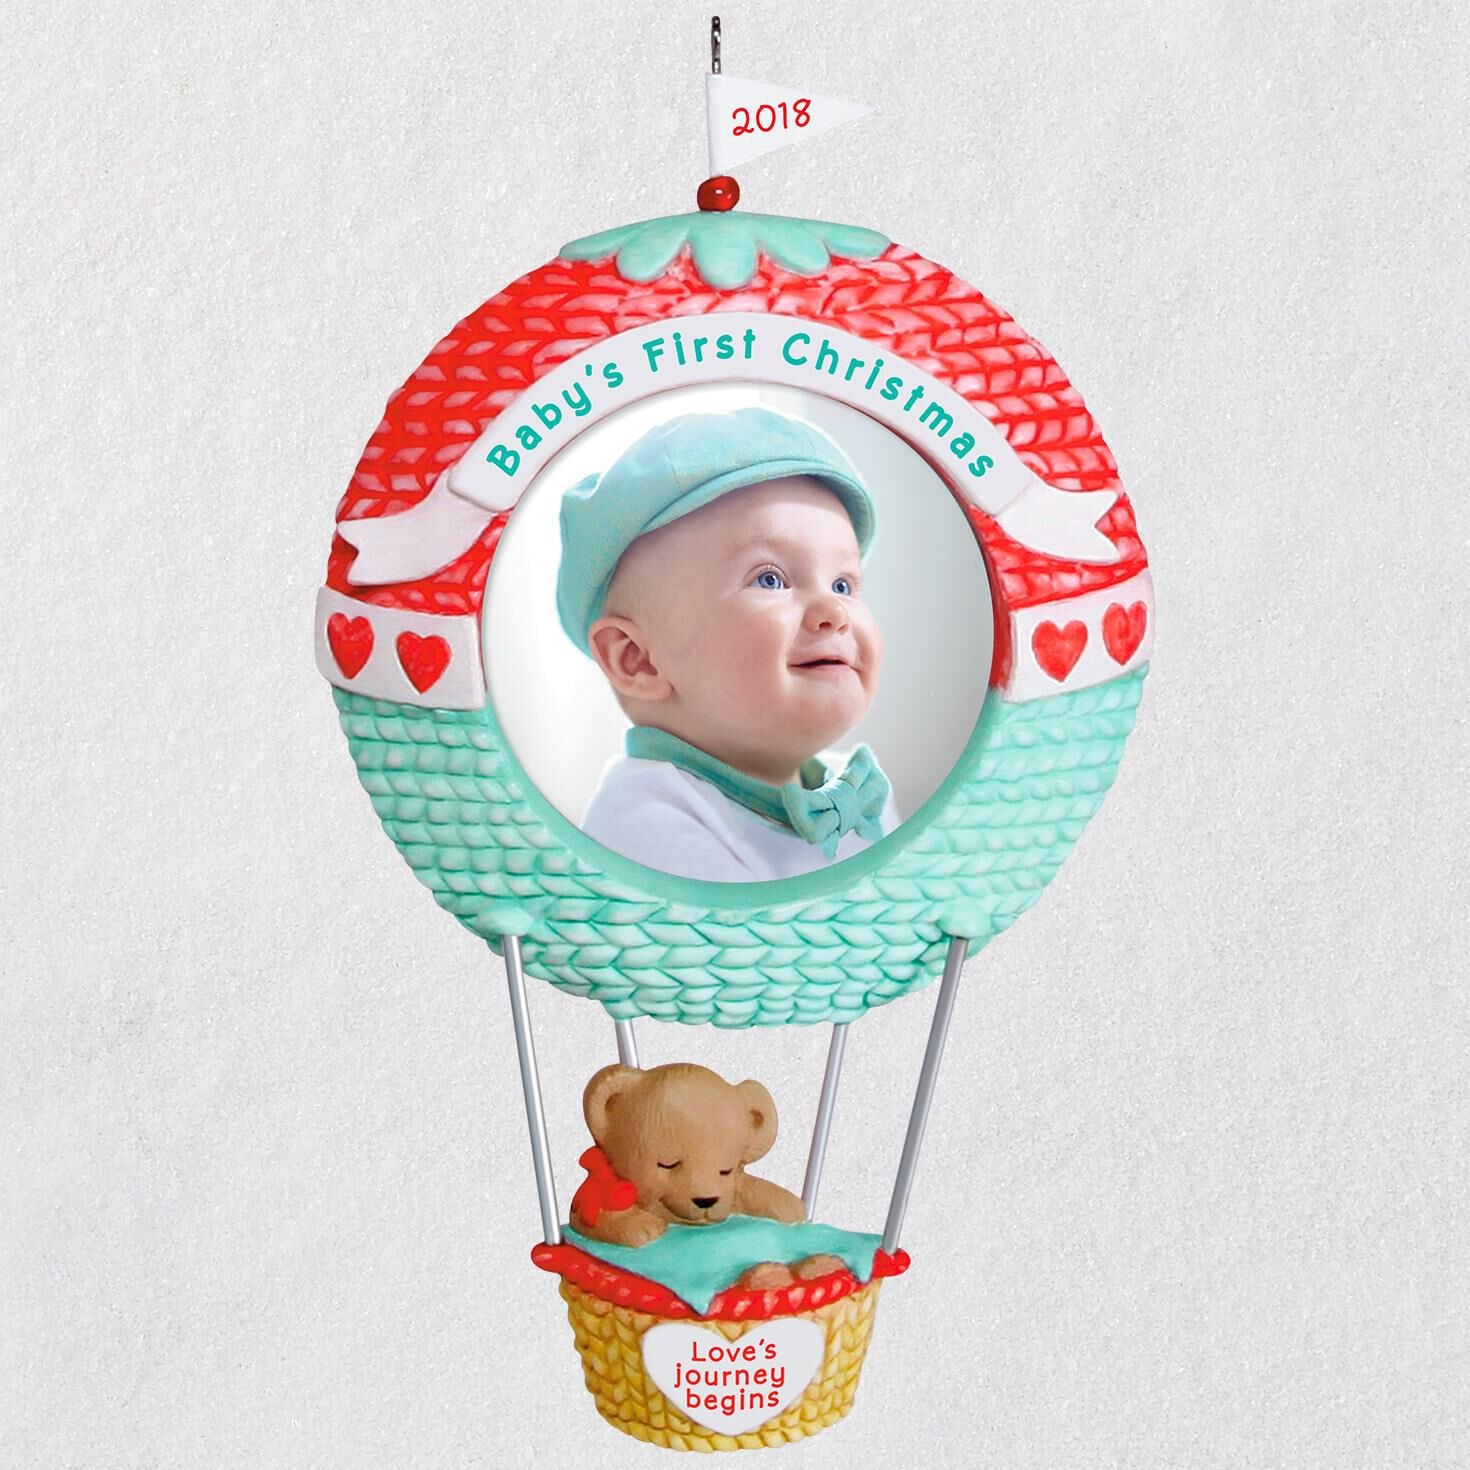 babys first christmas loves journey begins 2018 photo ornament keepsake ornaments hallmark